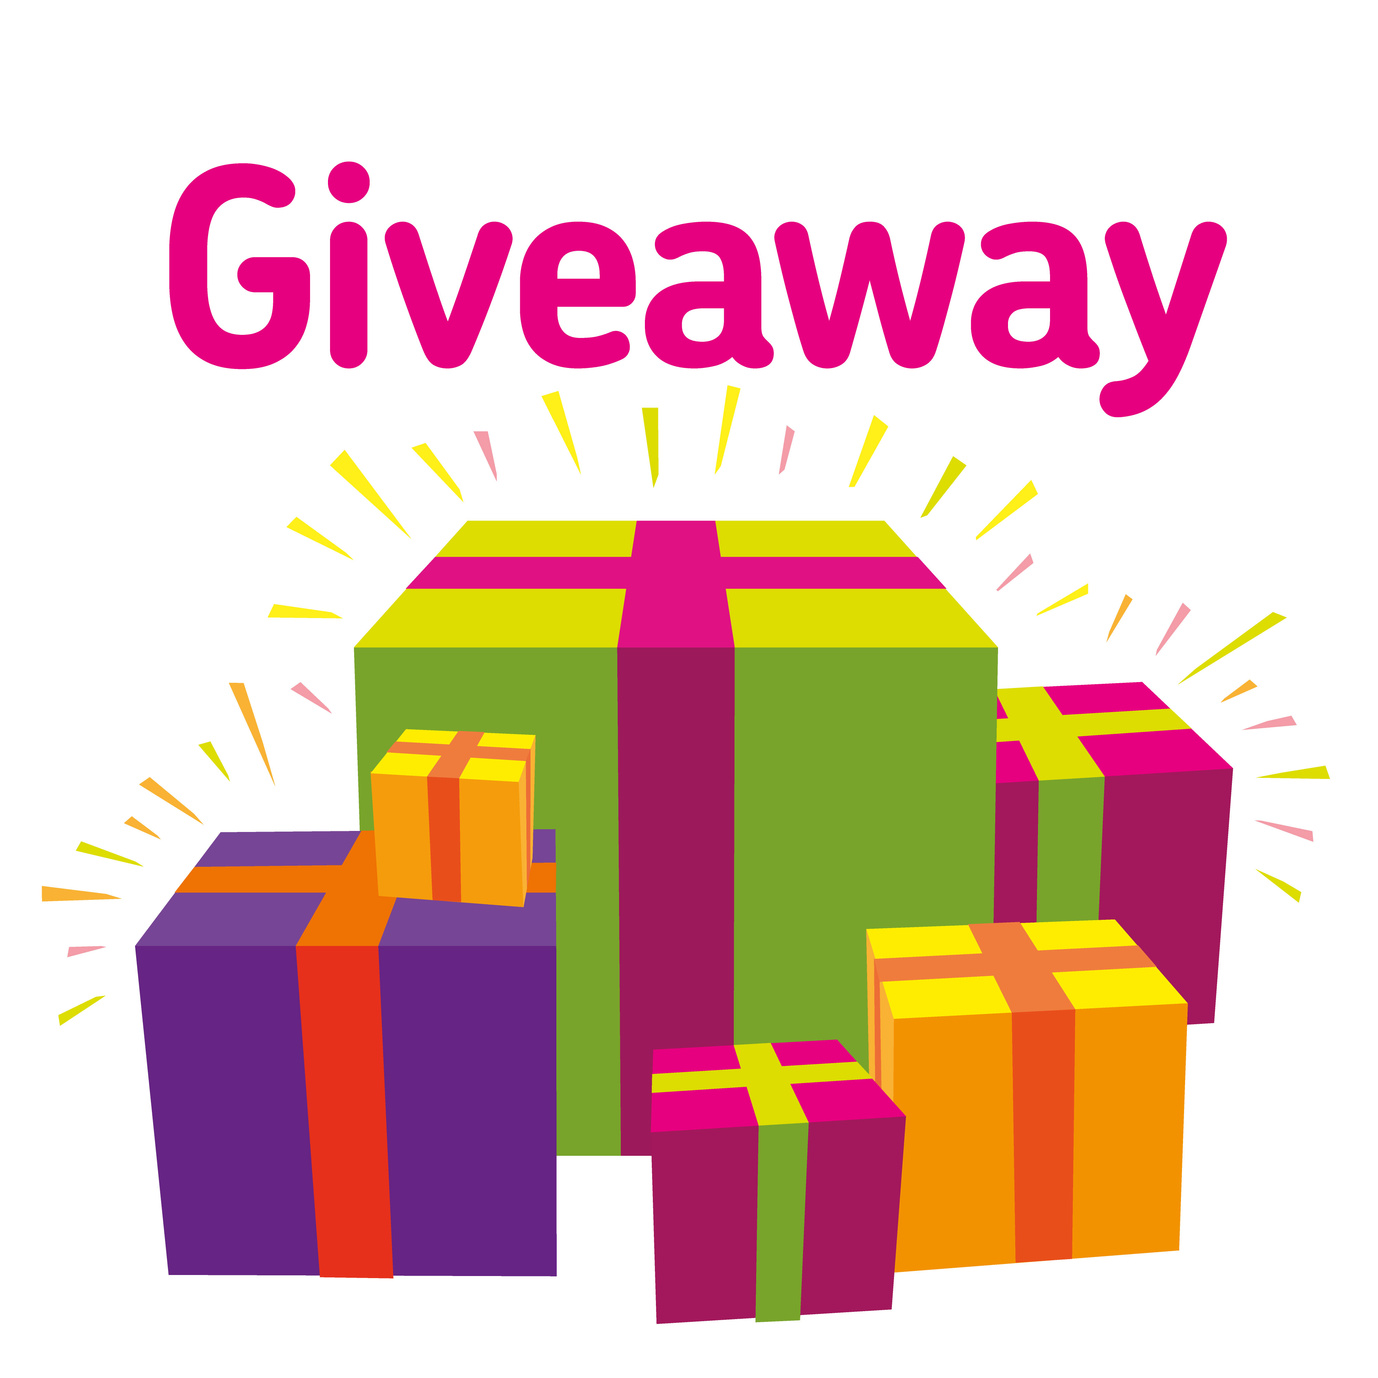 giveaway blogs 5 ways to promote your blog giveaways 1967